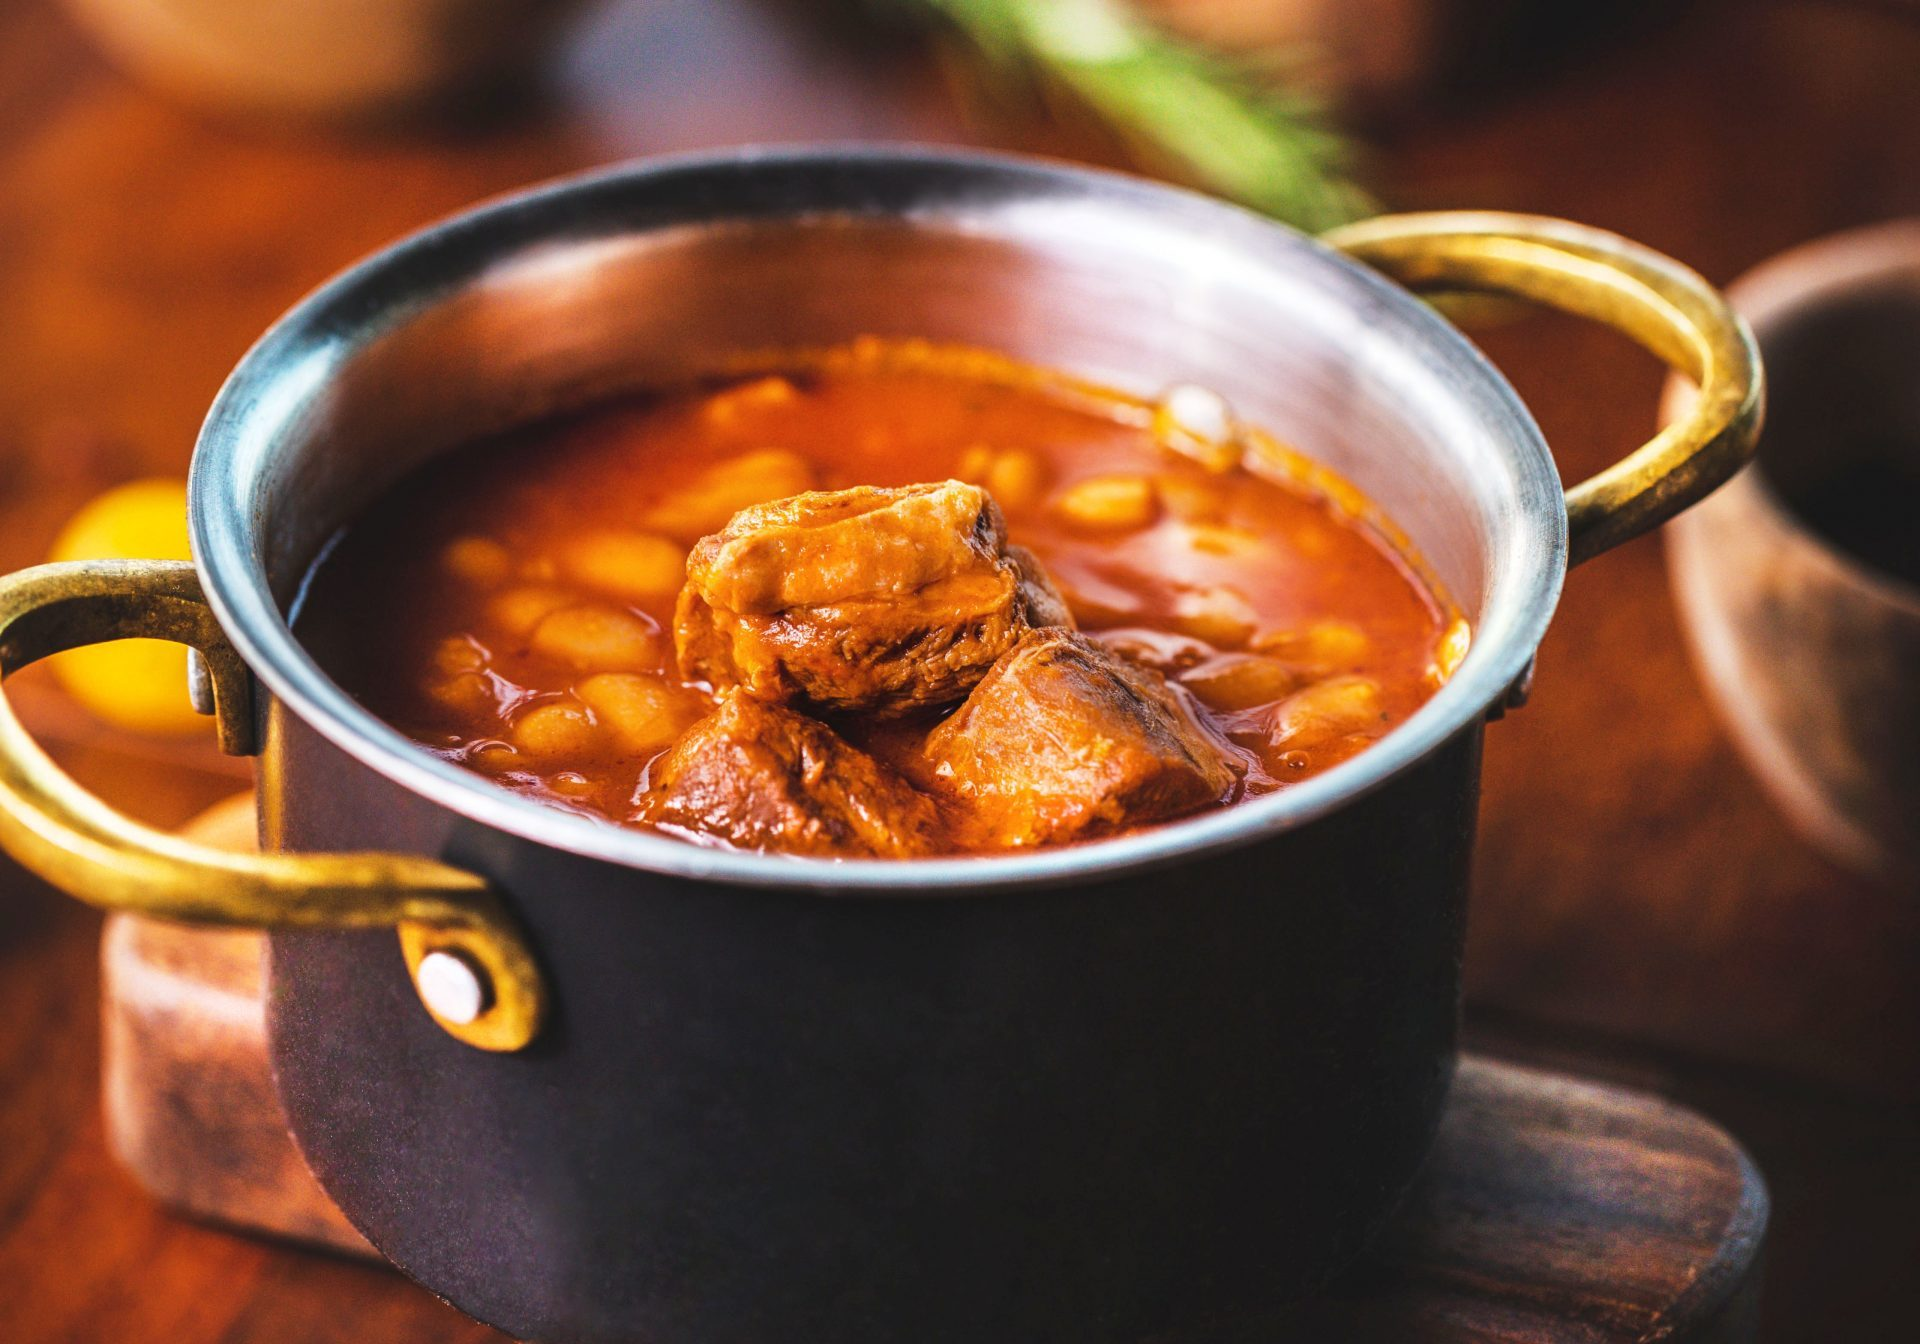 red soup with beans and meat in a pan, standing on a wooden table with rosemary